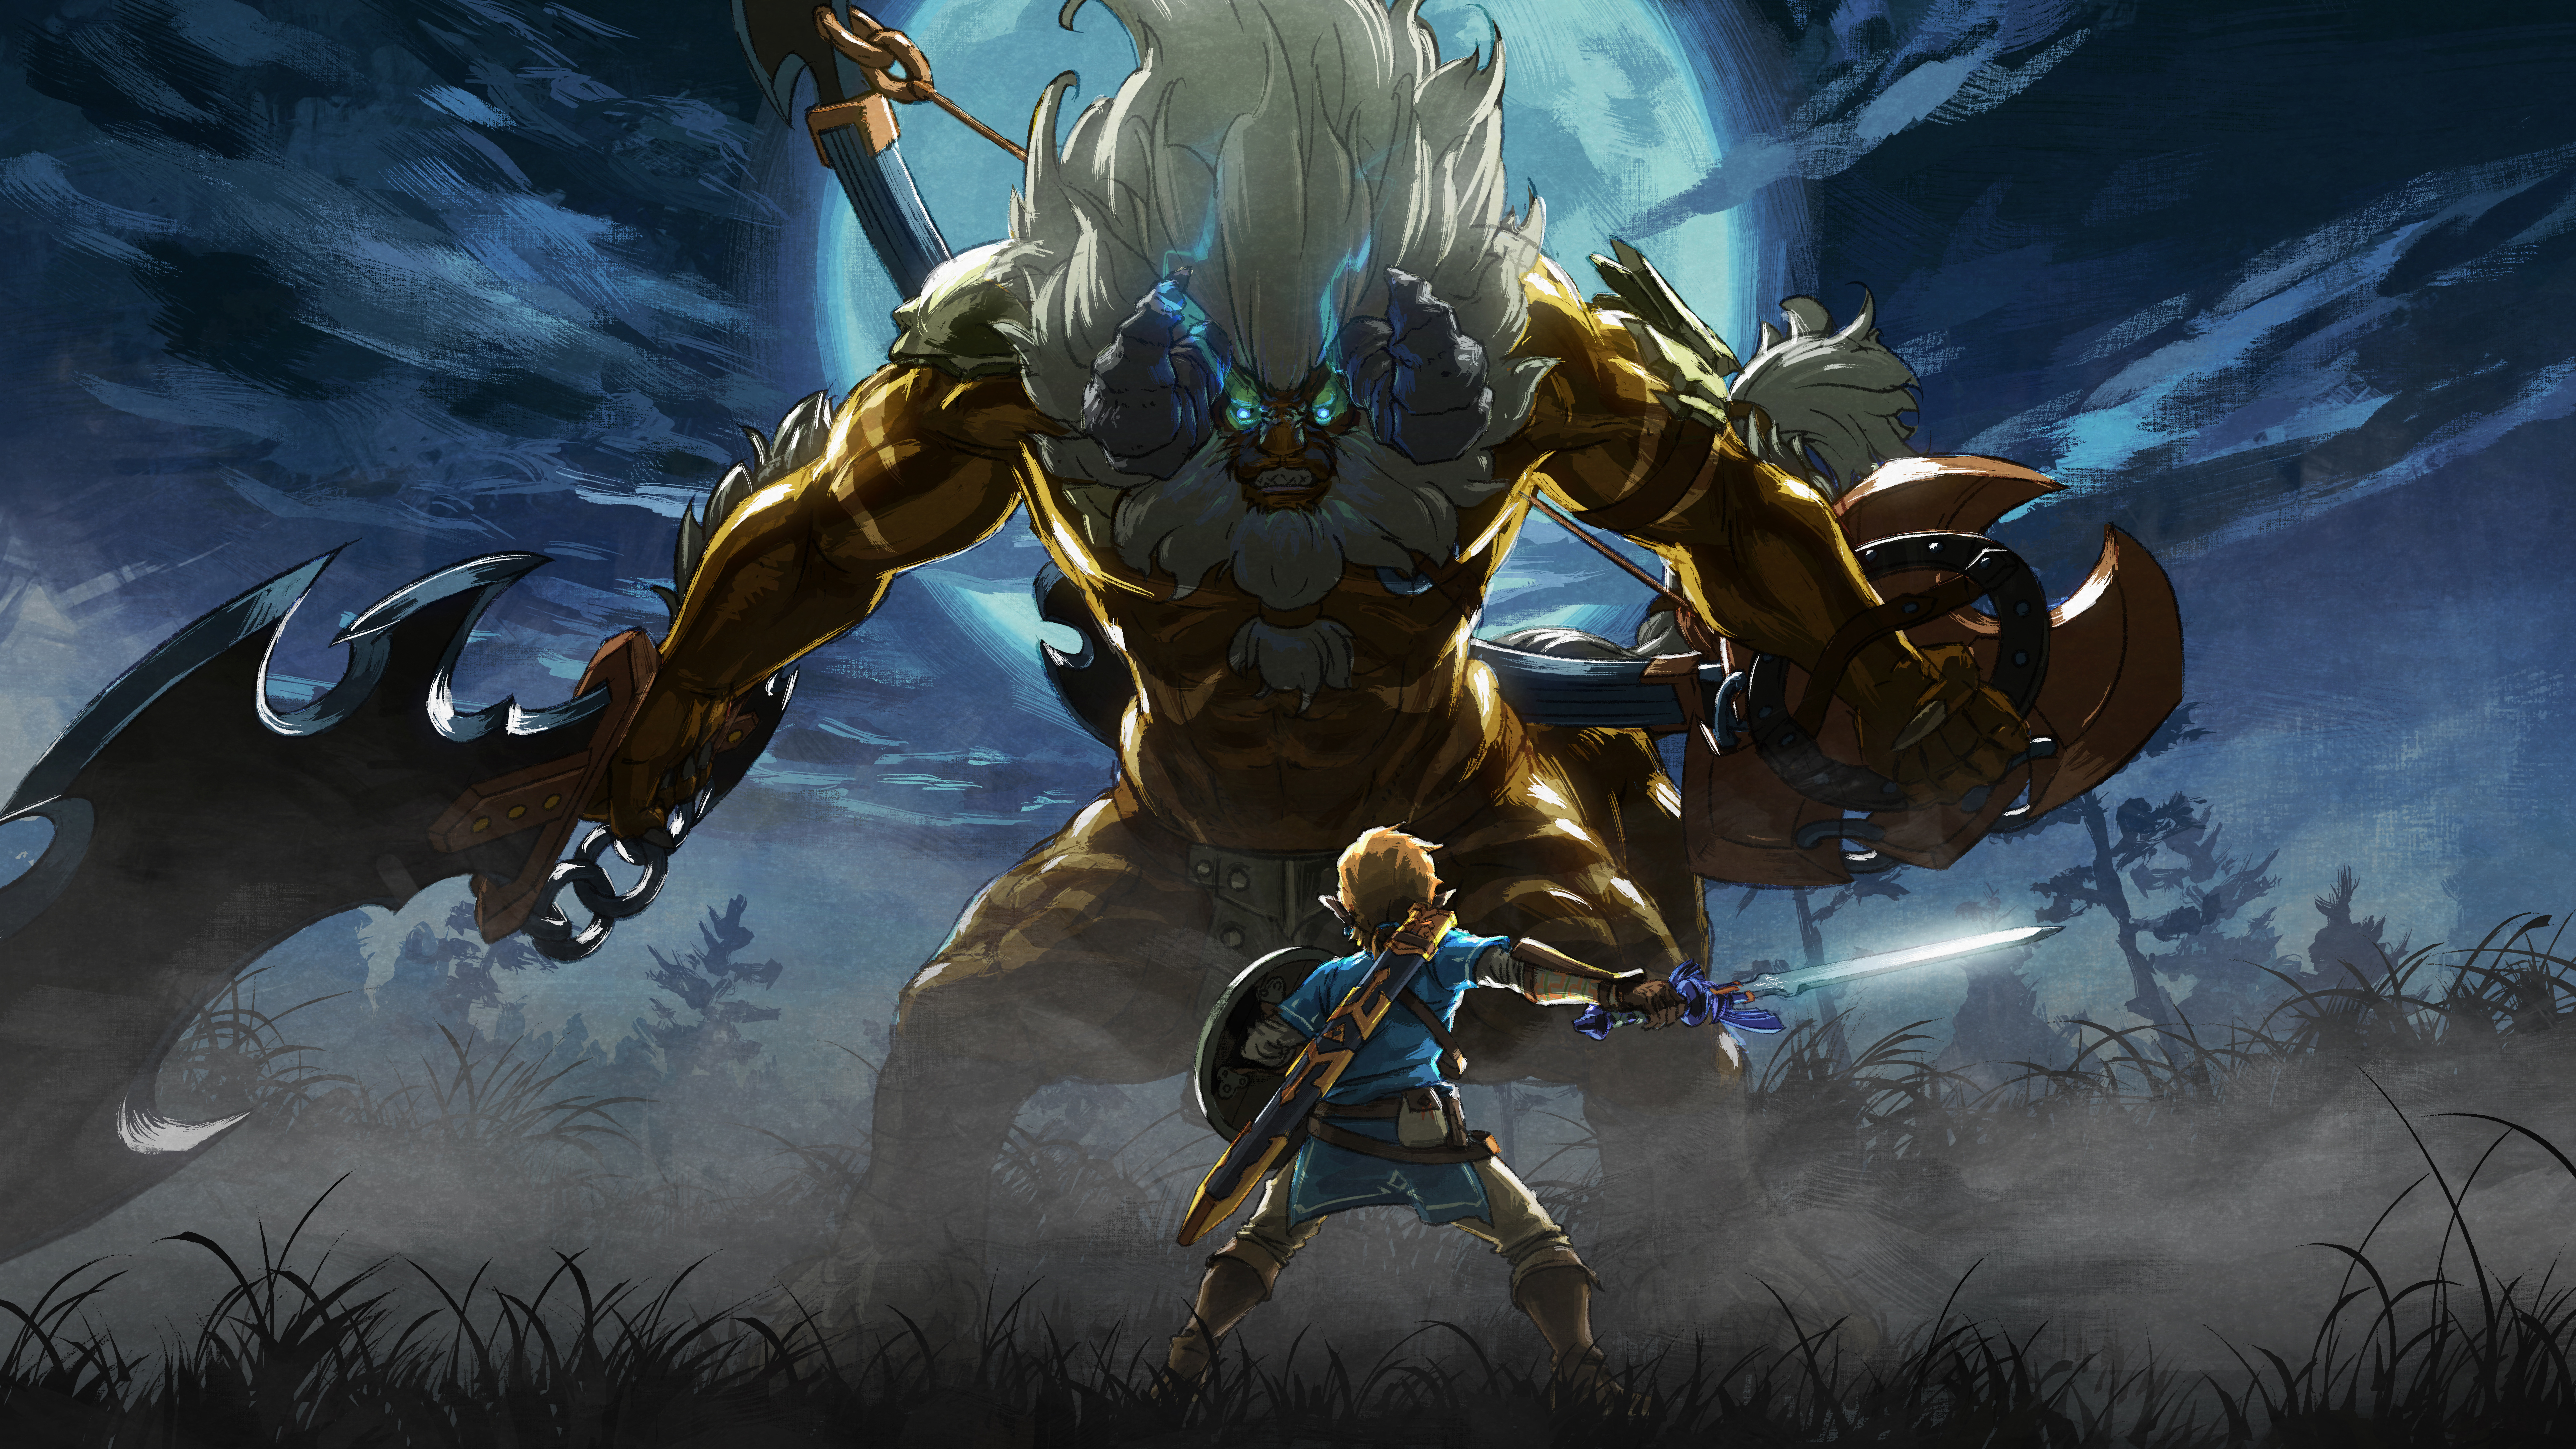 Zelda Breath Of The Wild Wallpaper 1920x1080 Posted By John Cunningham